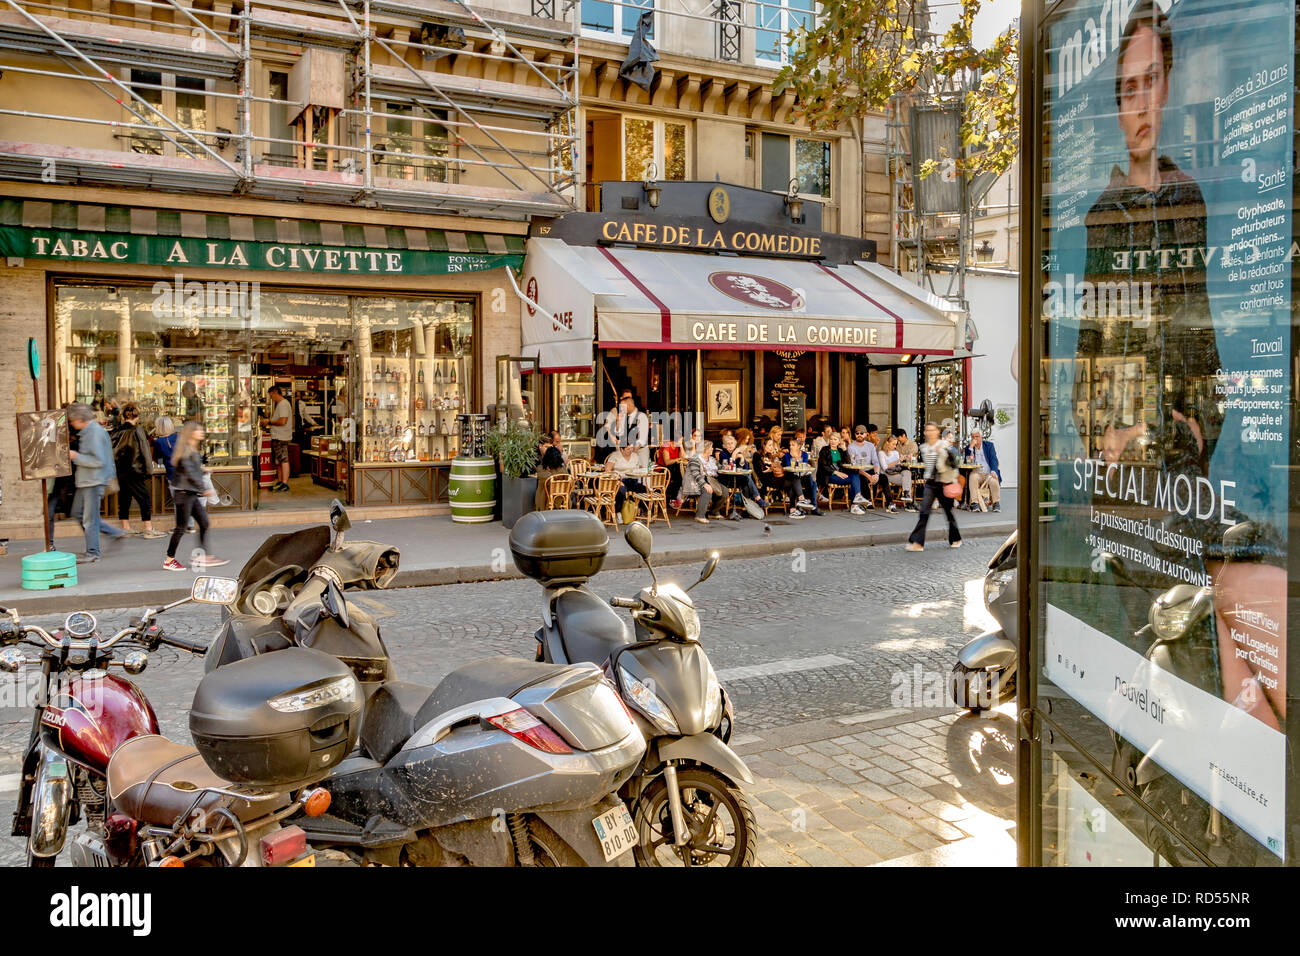 Scooters parked in a Paris street next to an advertising board with people sitting outside having lunch at Cafe De La Comedie, Rue Saint Honoré ,Paris - Stock Image